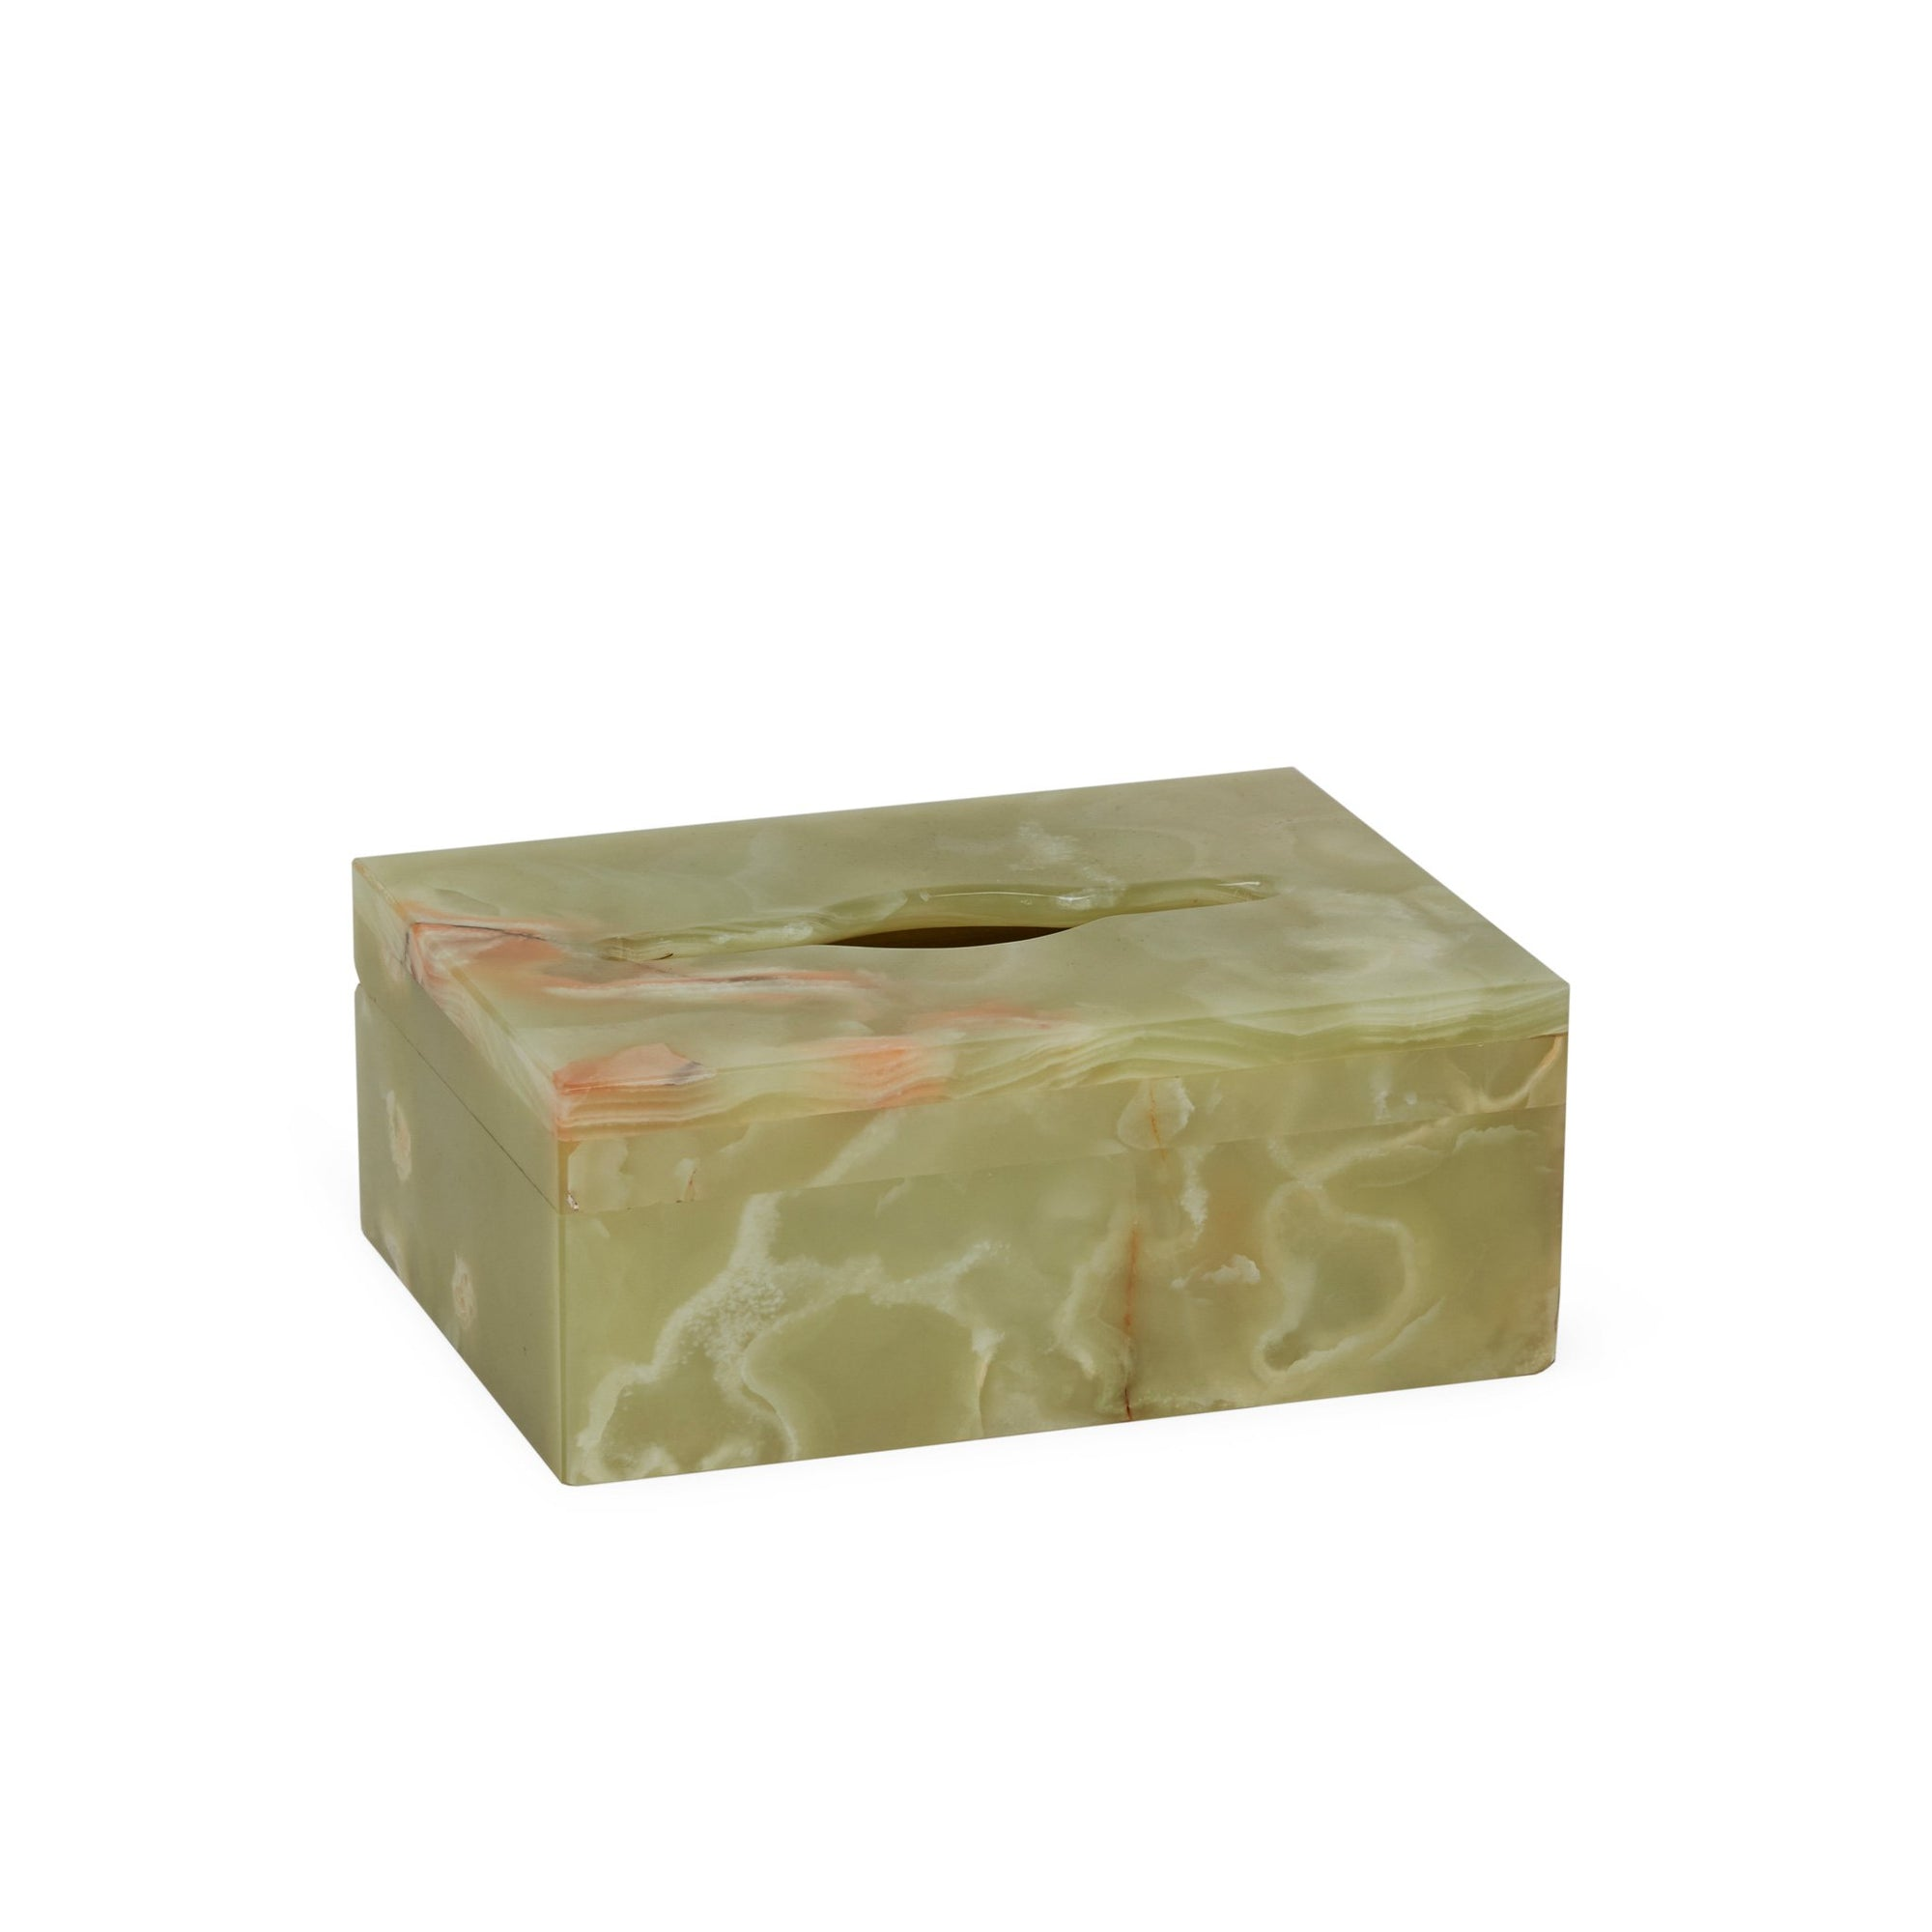 3354-GROX Sherle Wagner International Small Oblong Tissue Box Cover in Green Onyx